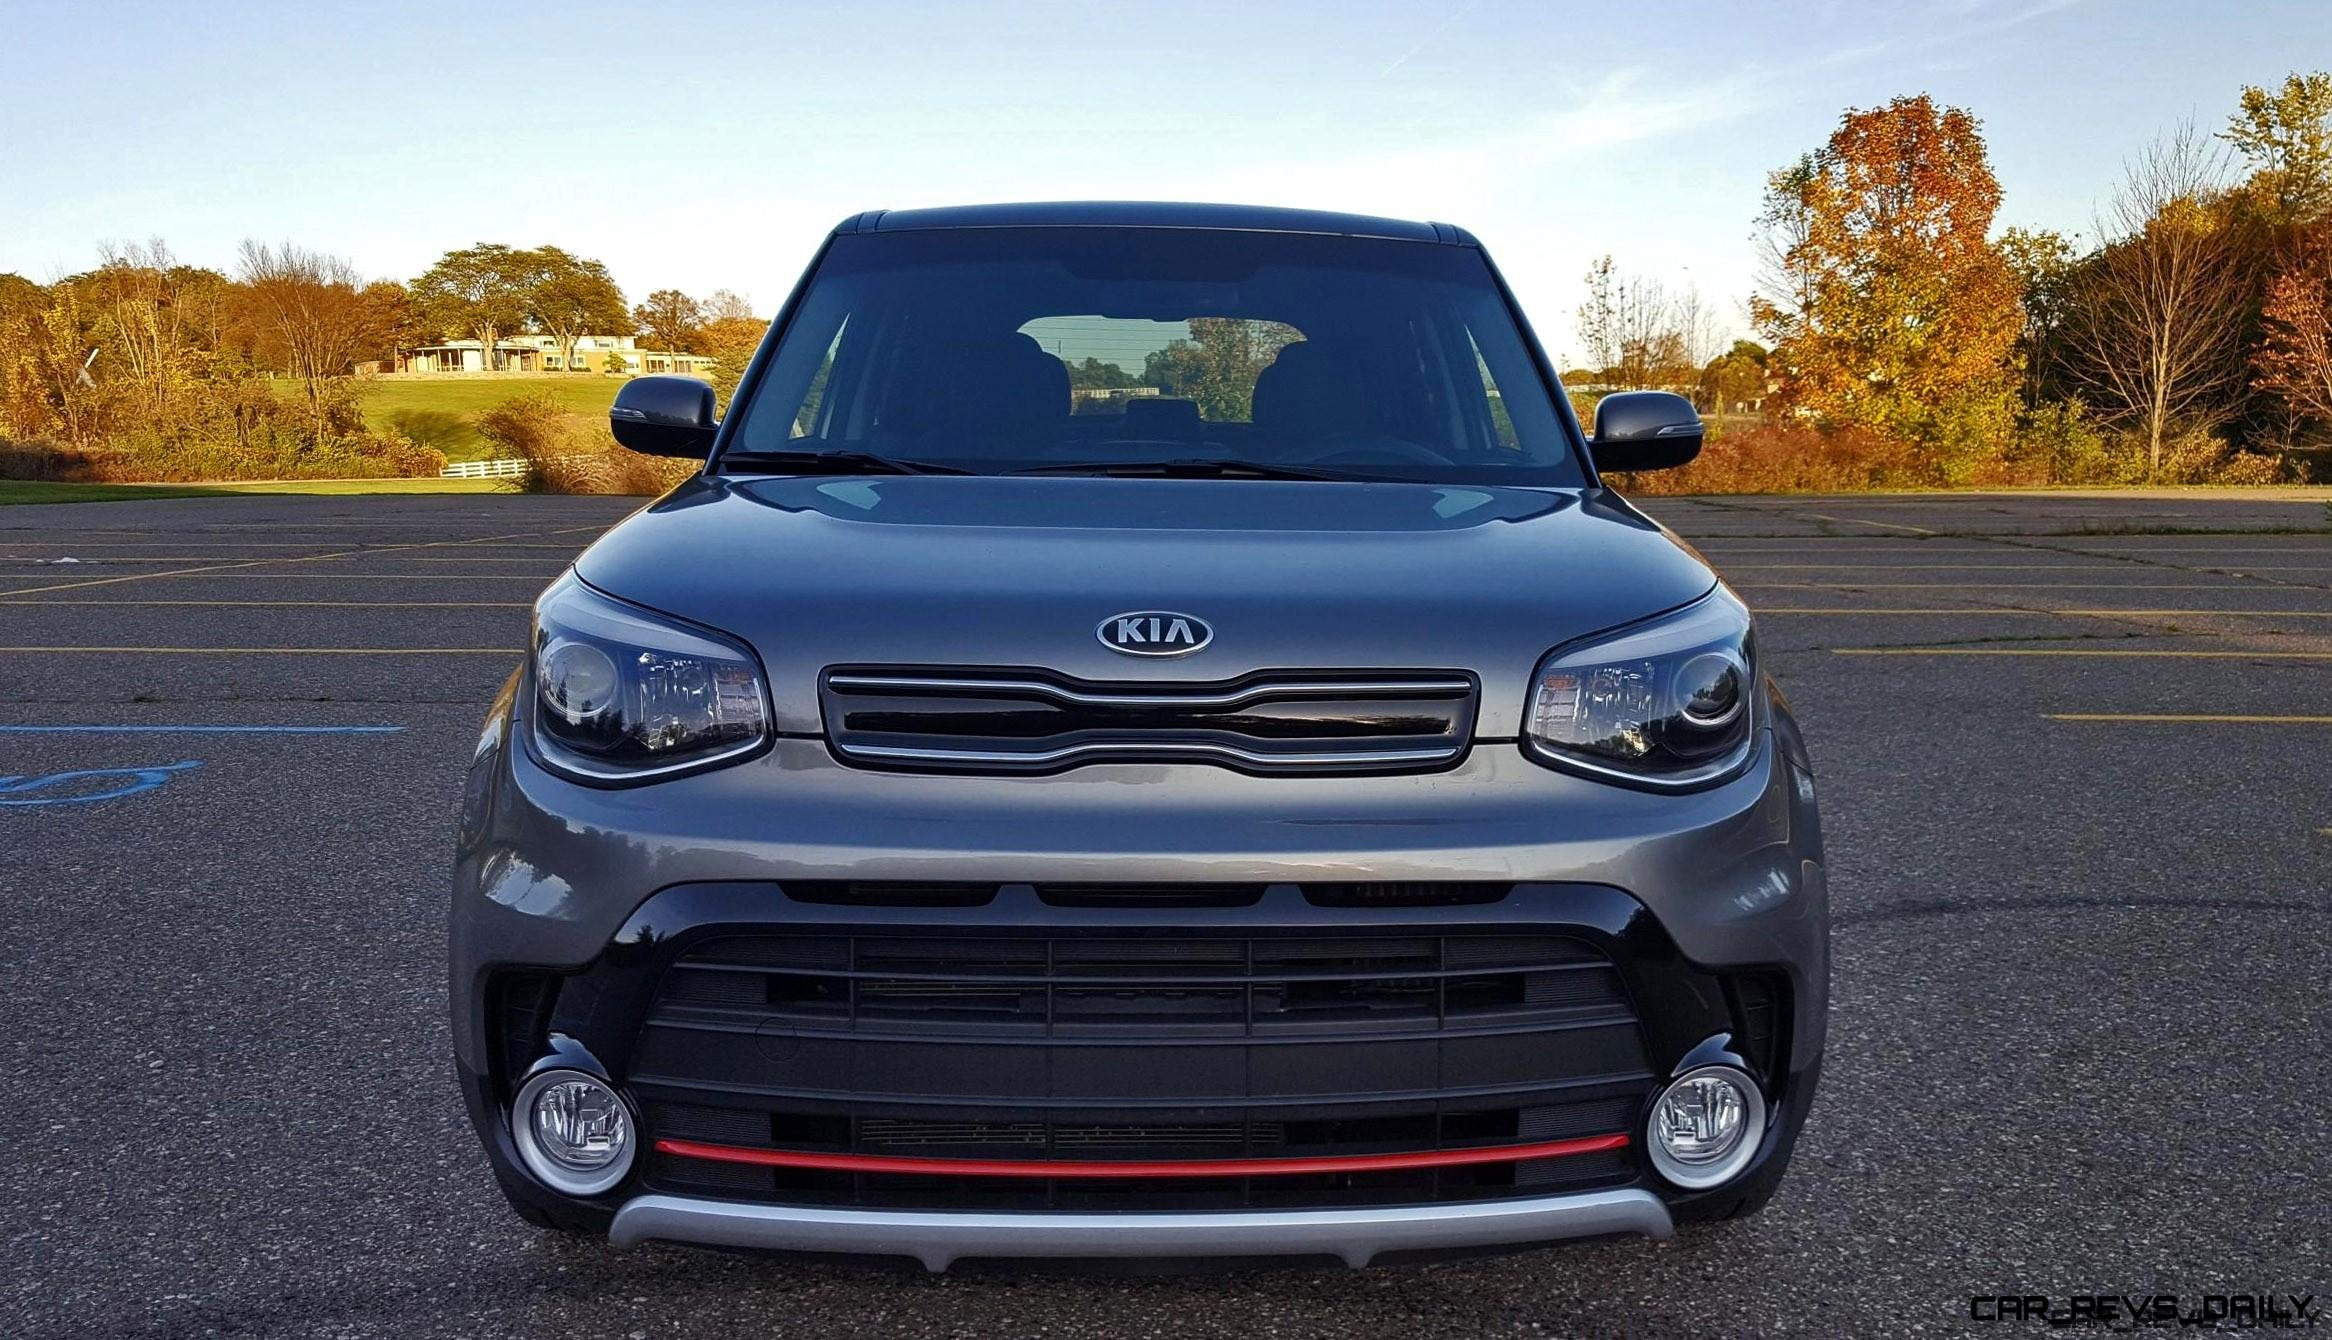 2017 kia soul turbo first drive review page 2. Black Bedroom Furniture Sets. Home Design Ideas